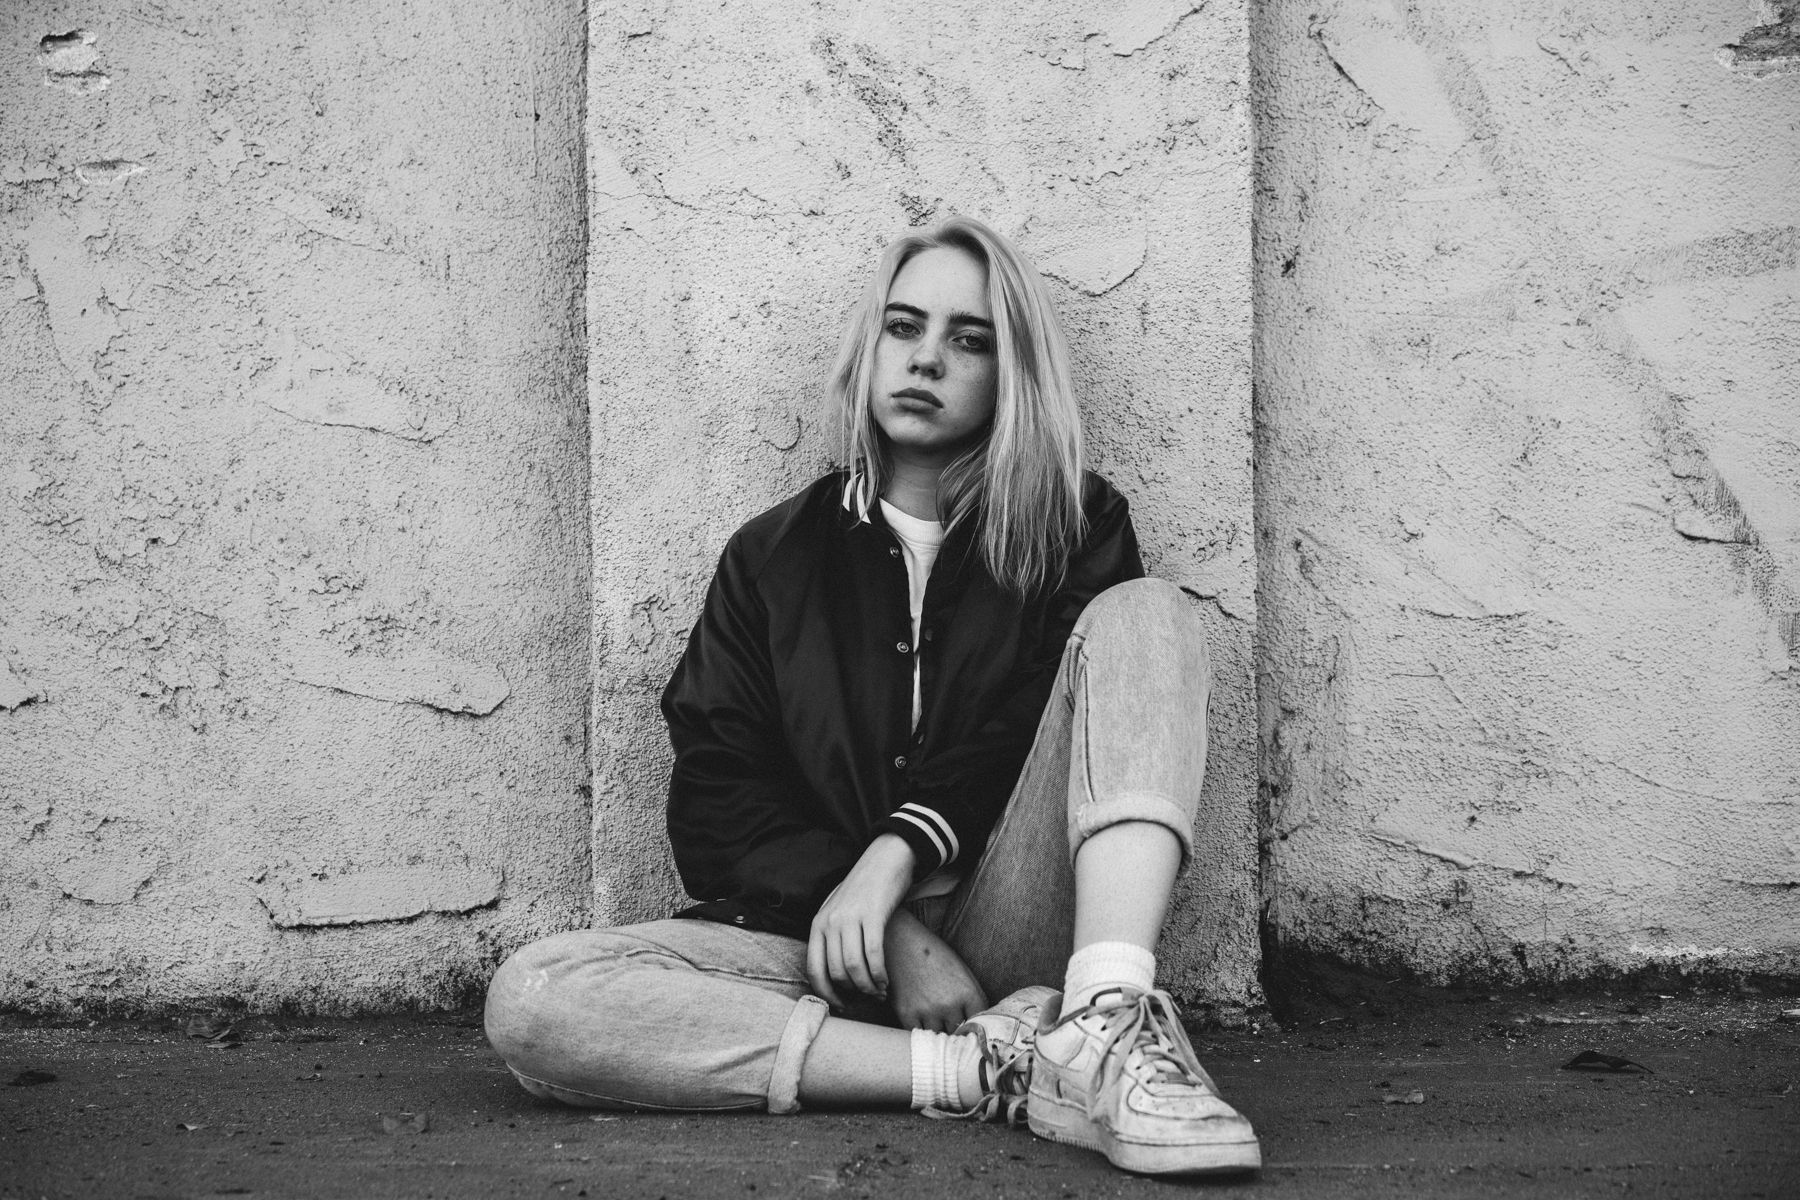 Billie Eilish Wallpapers Wallpaper Cave Billie Eilish Billie Wallpaper Pc